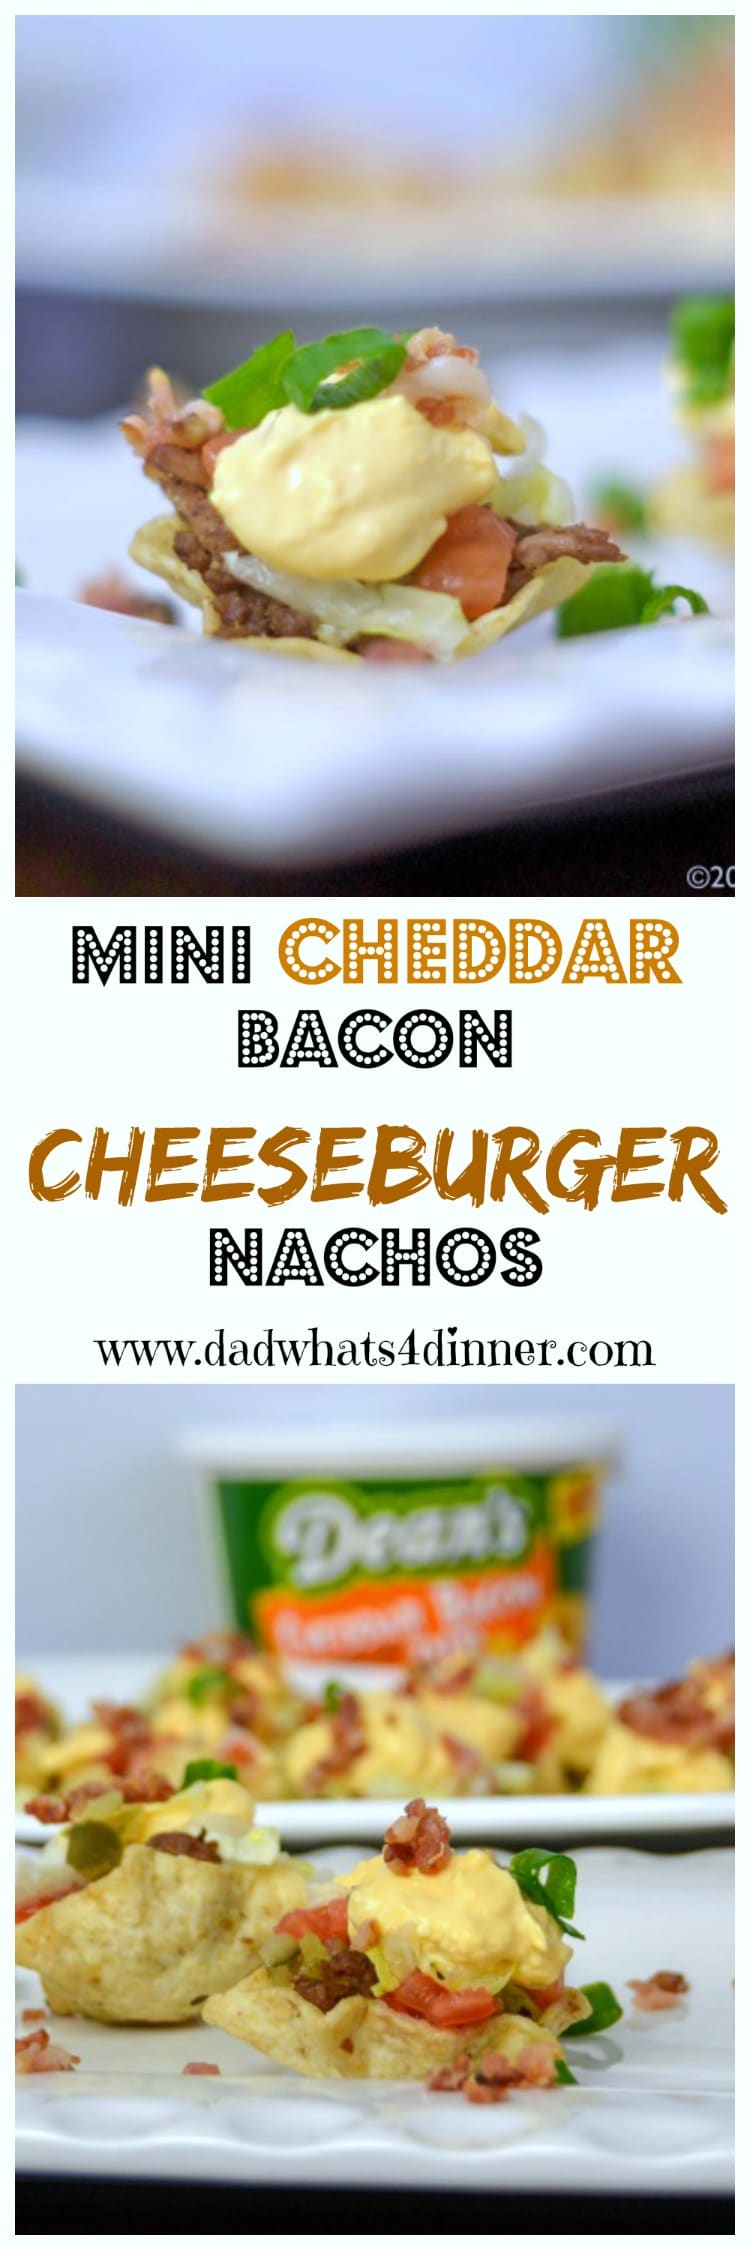 When you are craving the flavors of a cheeseburger but want finger foods instead, then my Mini Cheddar Bacon Cheeseburger Nachos are sure to please. The perfect appetizer forthe Big Game! #ad #DeansDreamBig #Gameday #appetizer #cheeseburgers #nachos #dips #tailgating #Easy #Recipe www.dadwhats4dinner.com